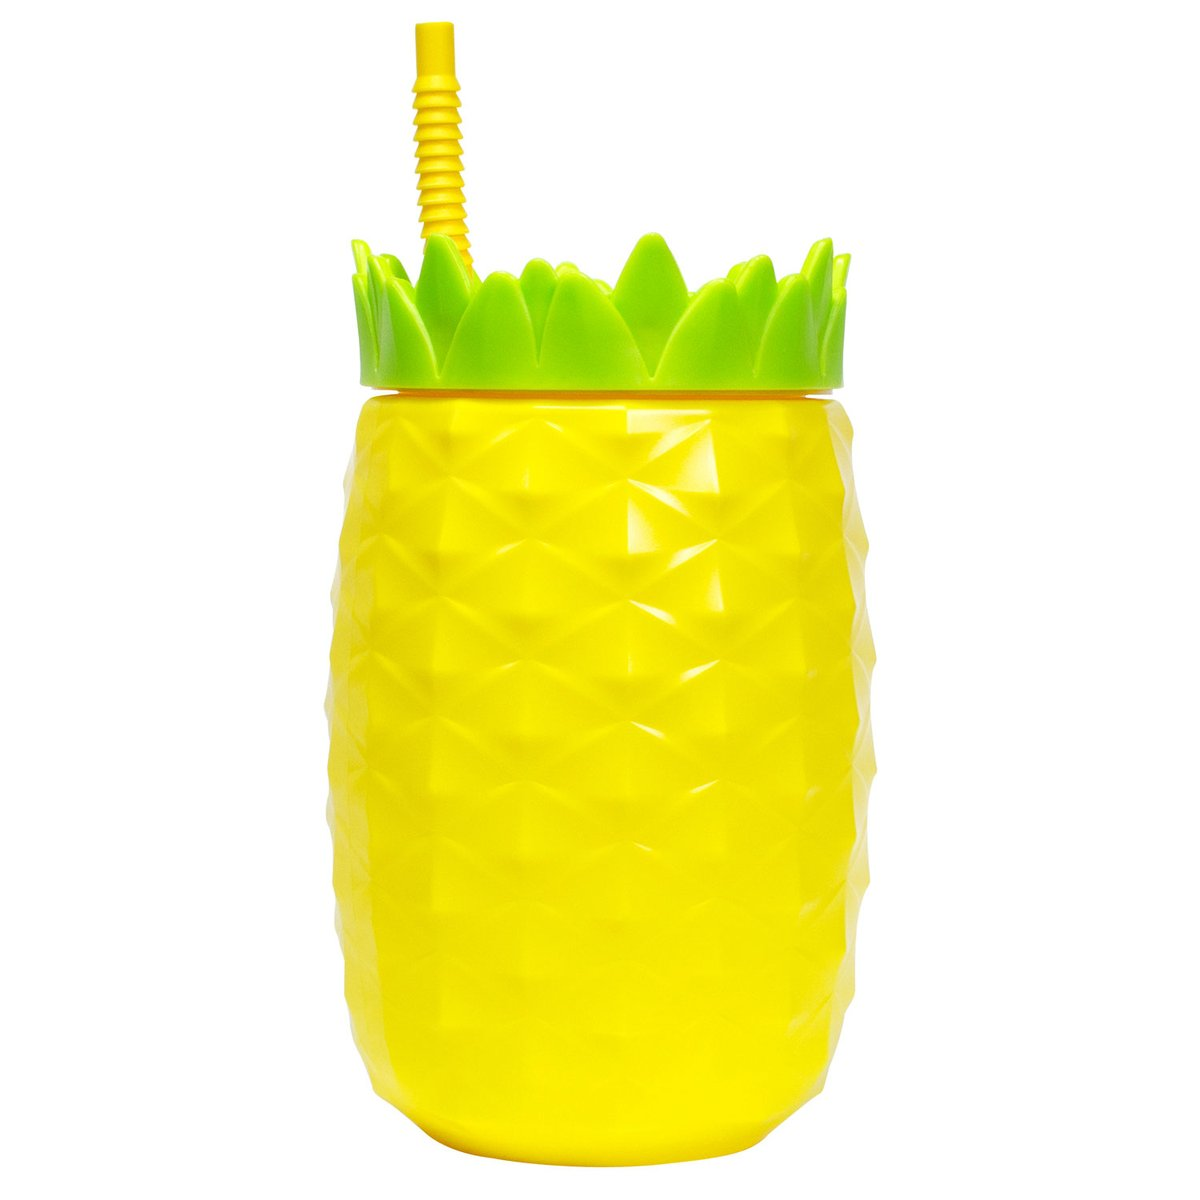 7601-64-oz-oversized-pineapple-yellow_1200x.jpg